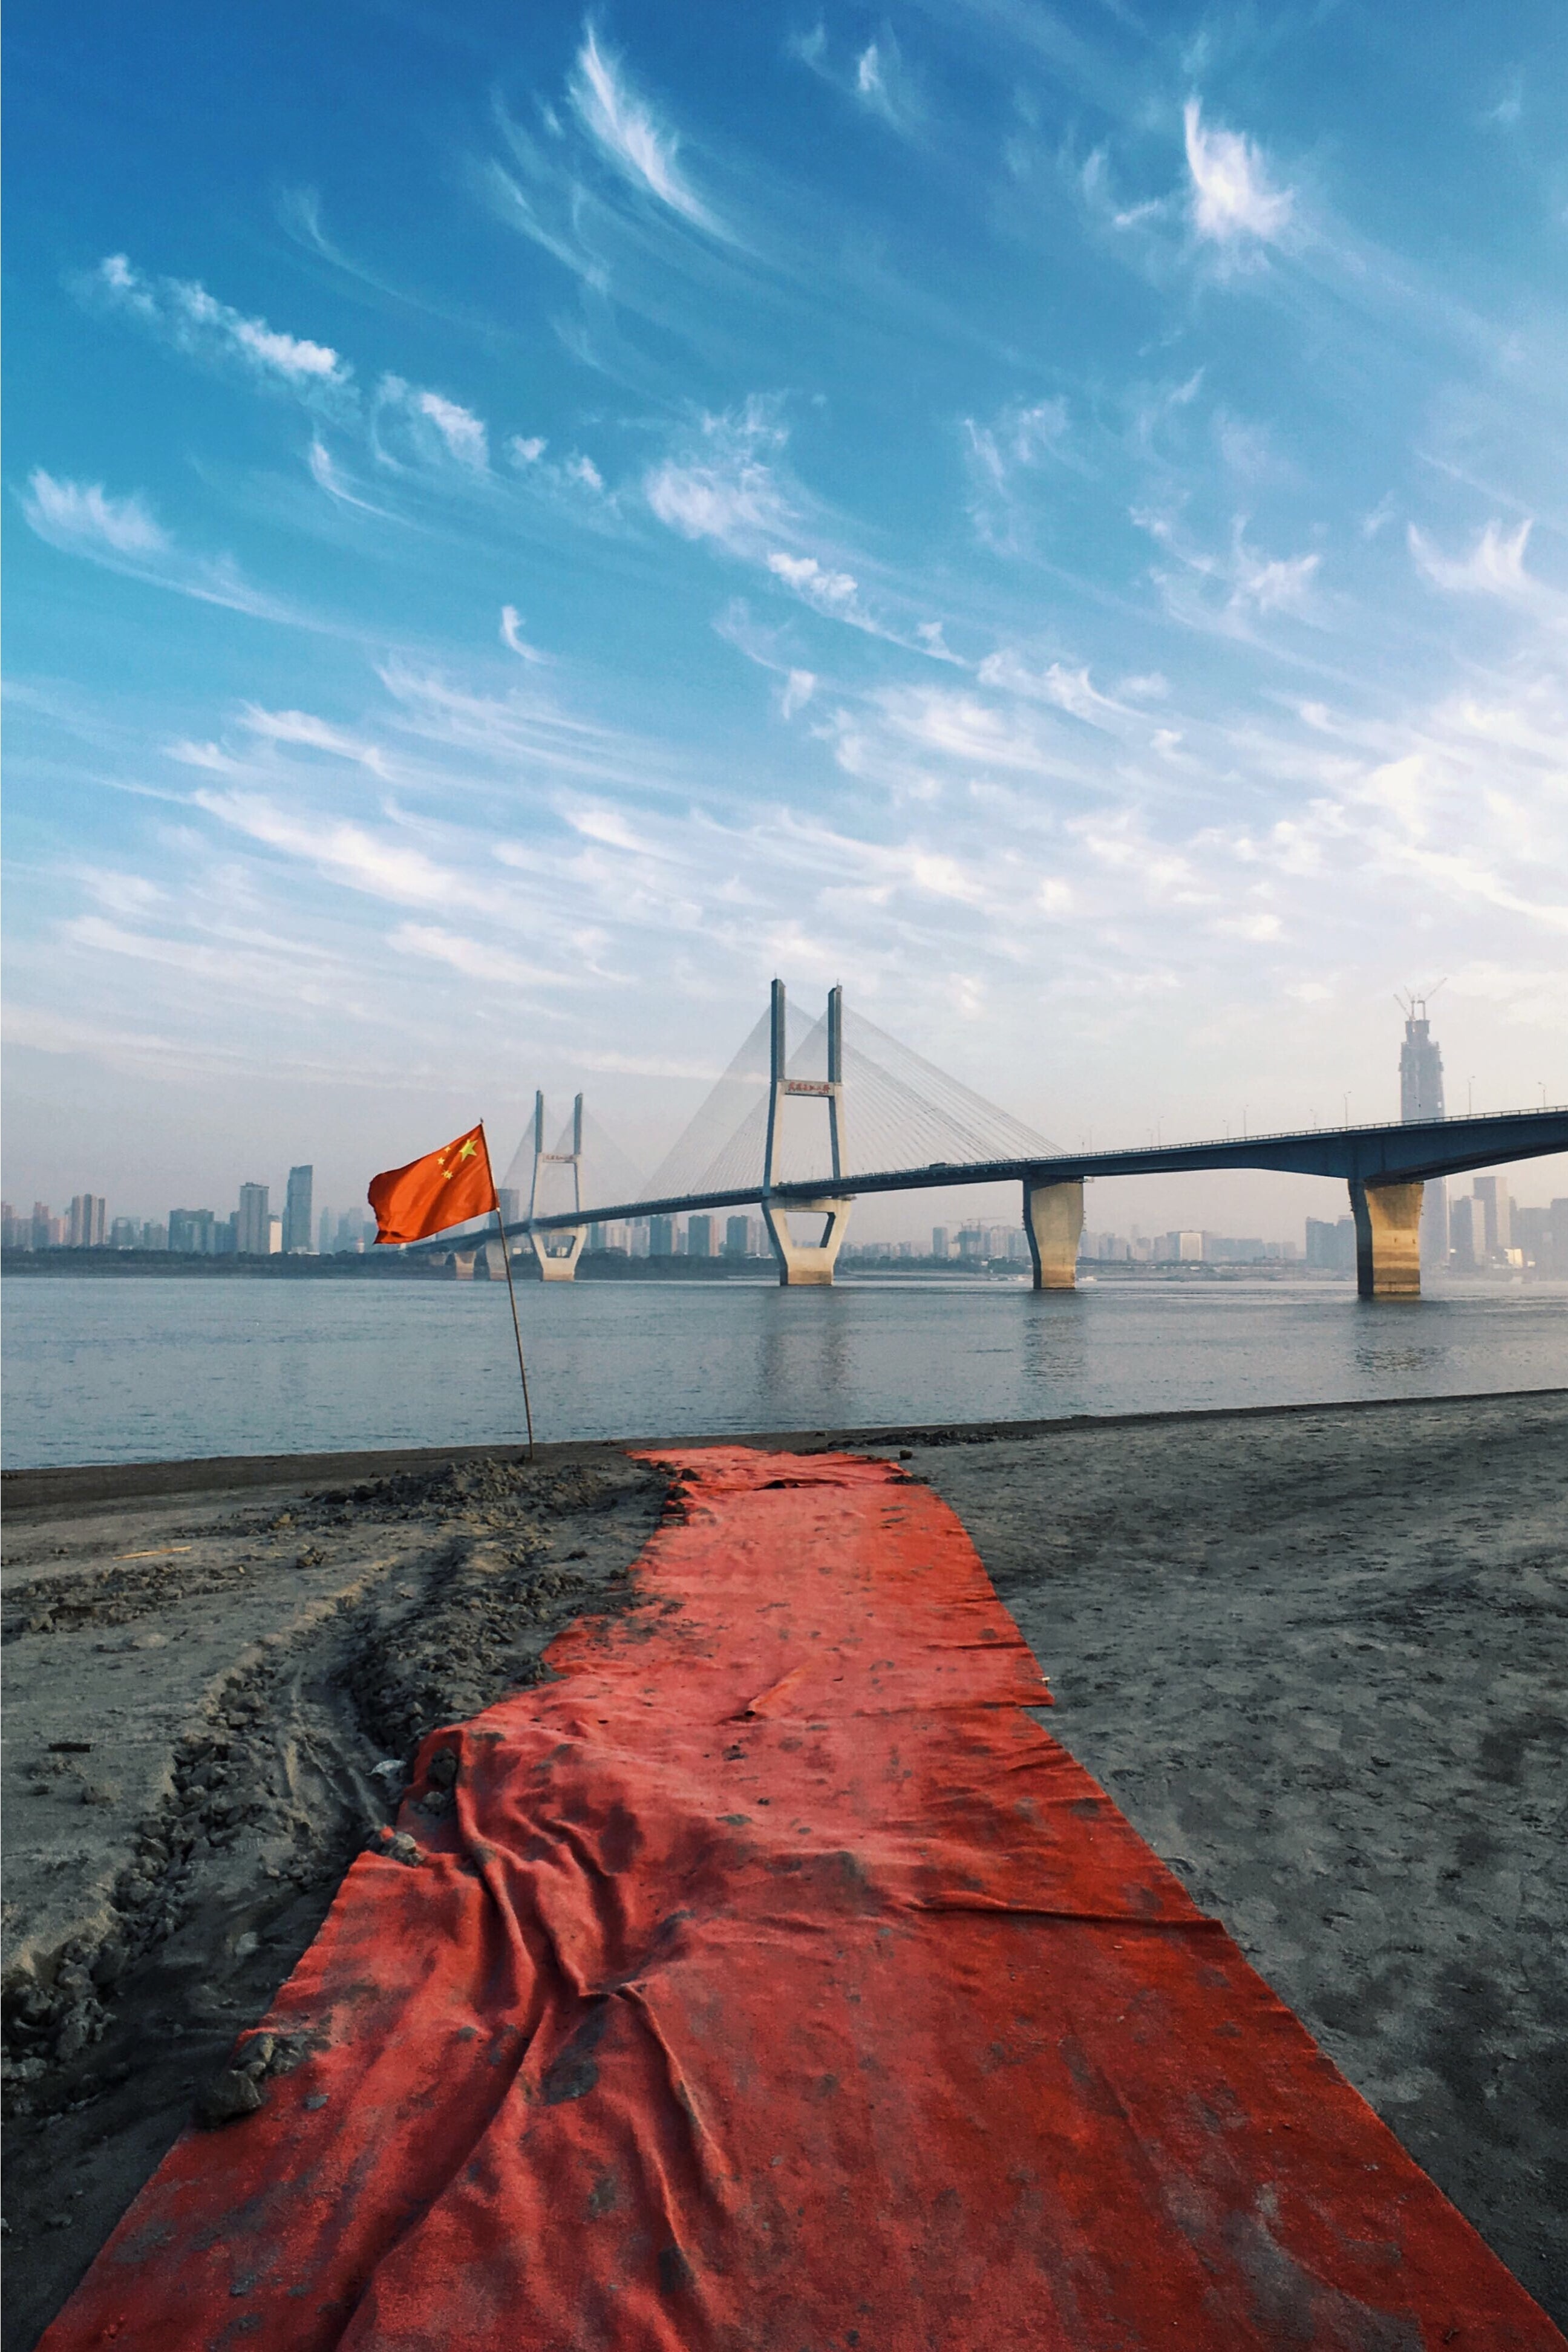 China flag near body of water during daytime